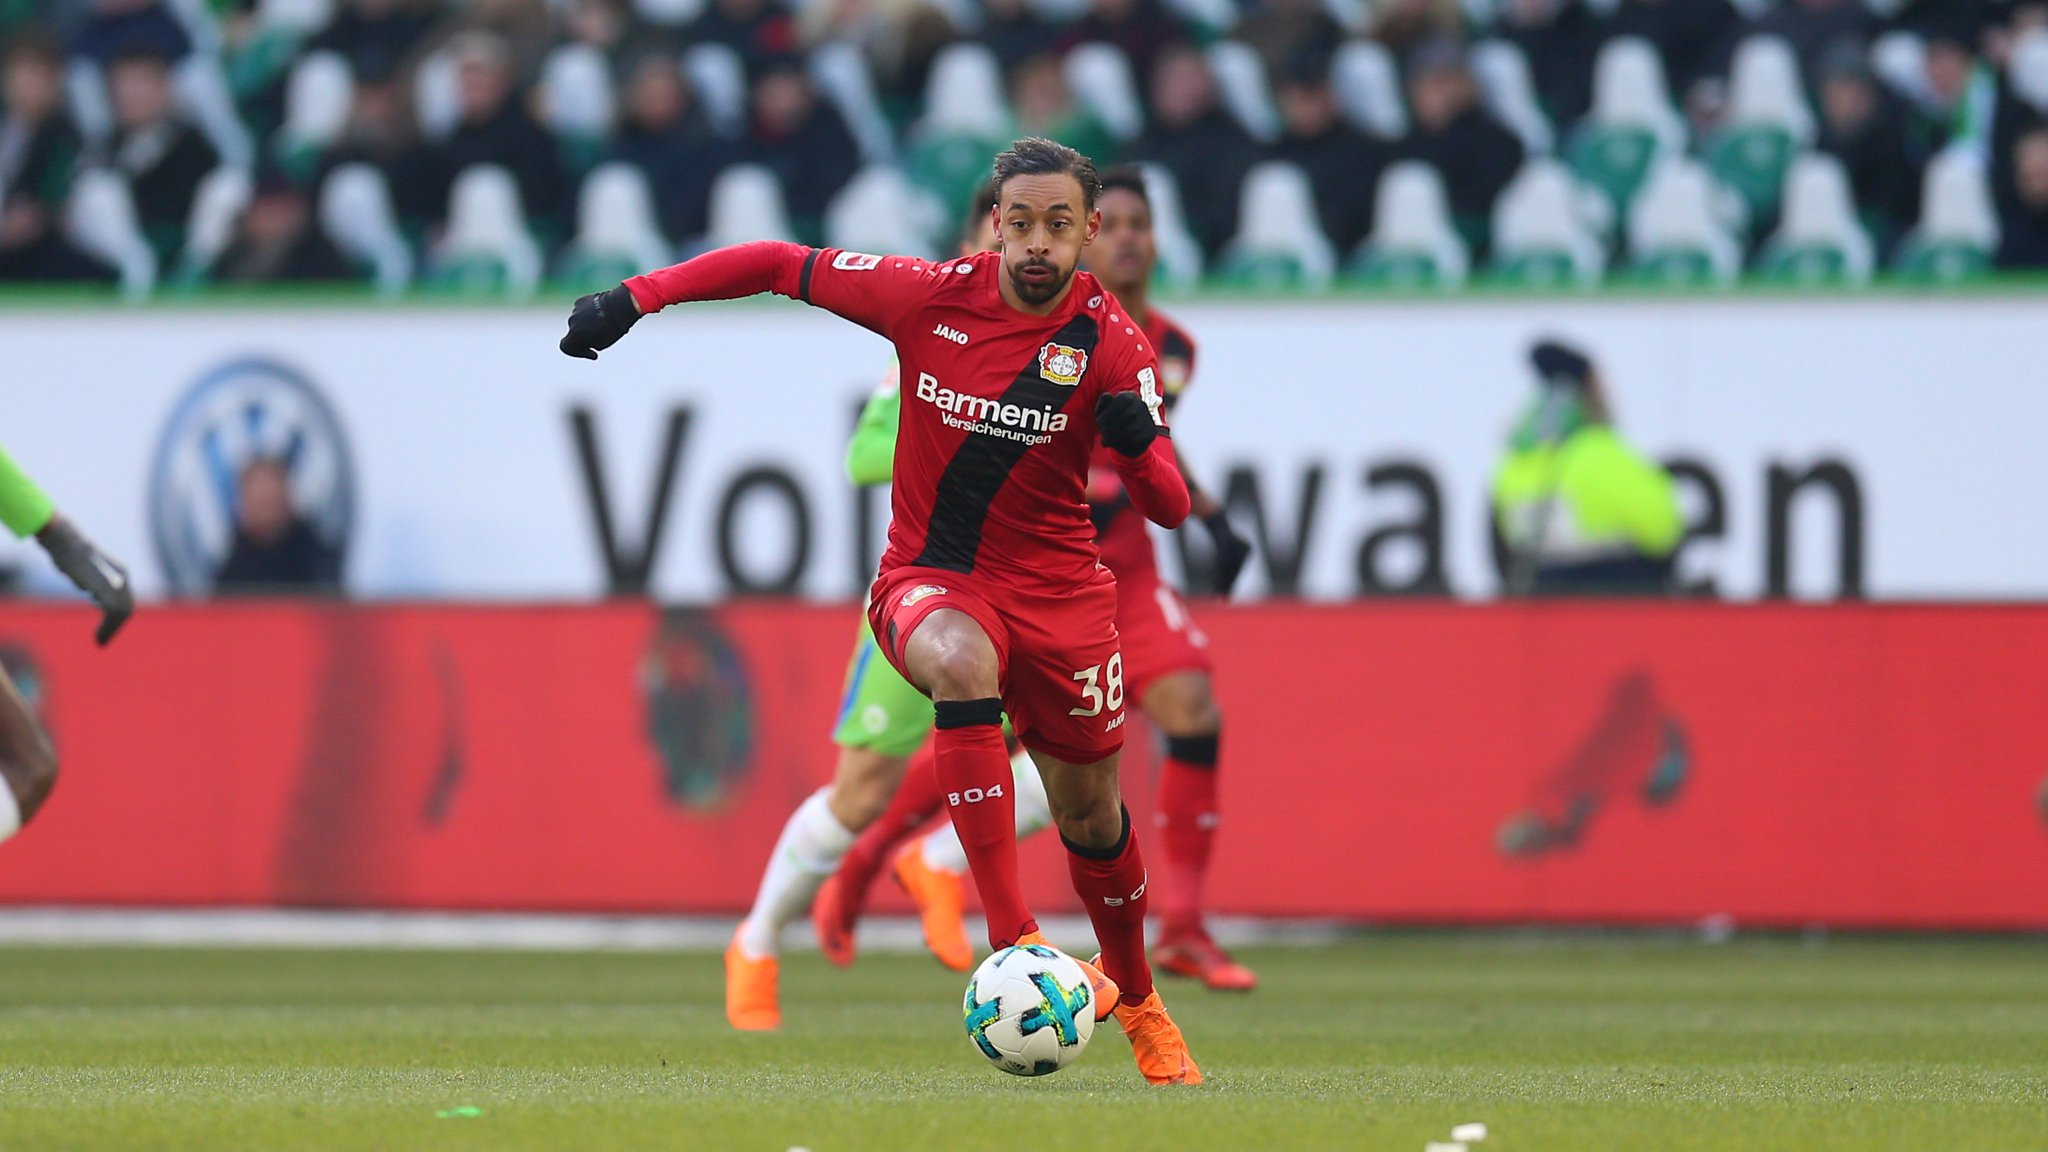 Wolfsburg vs Bayer Leverkusen Highlights